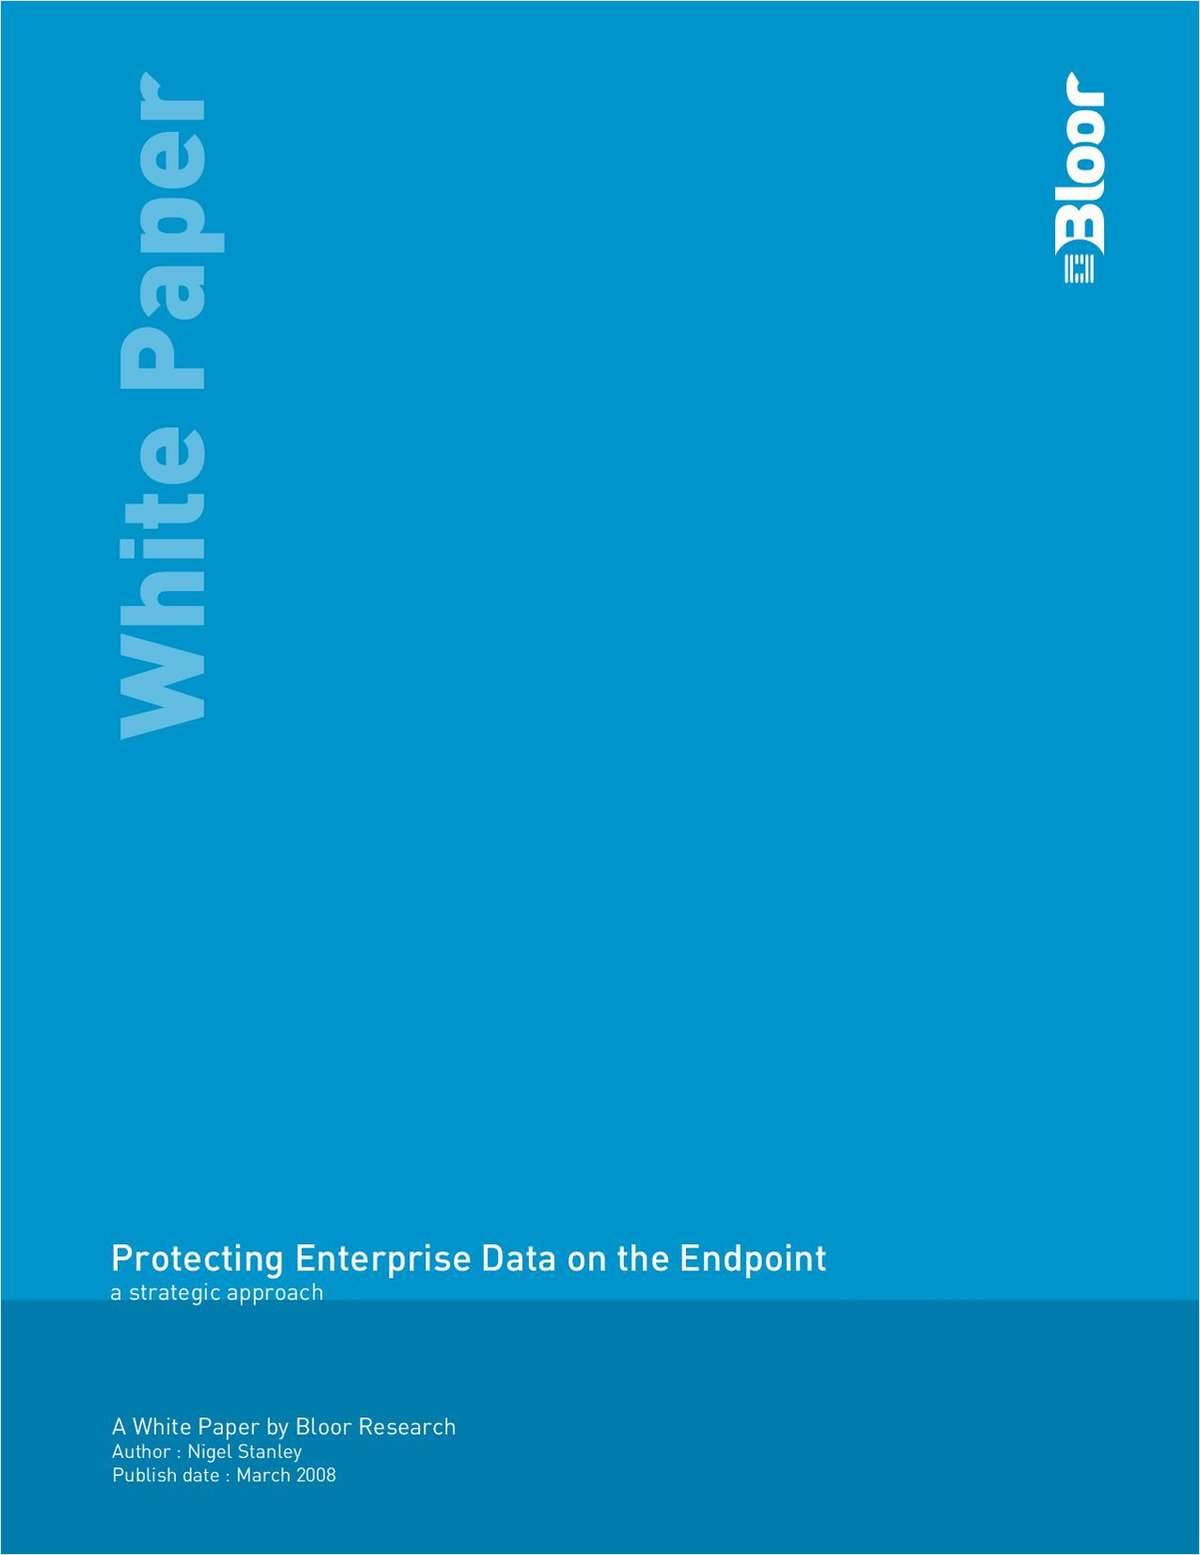 Protecting Enterprise Data on the Endpoint: A Strategic Approach